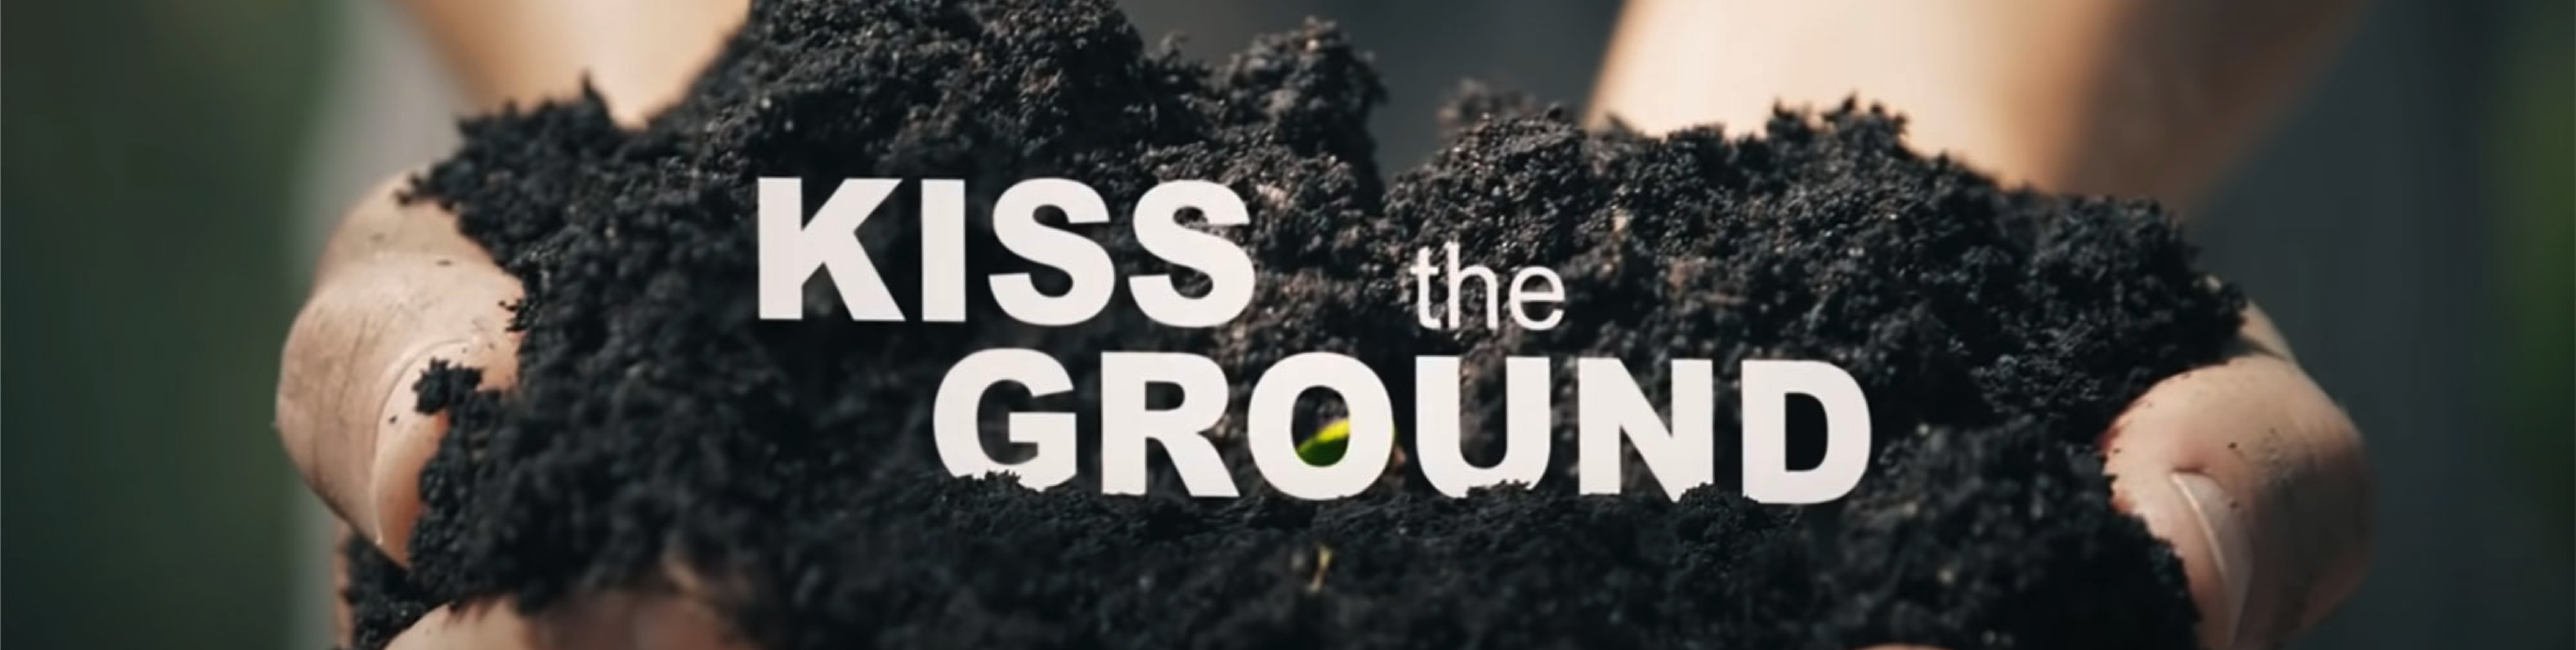 11 Things We Learned from Kiss the Ground